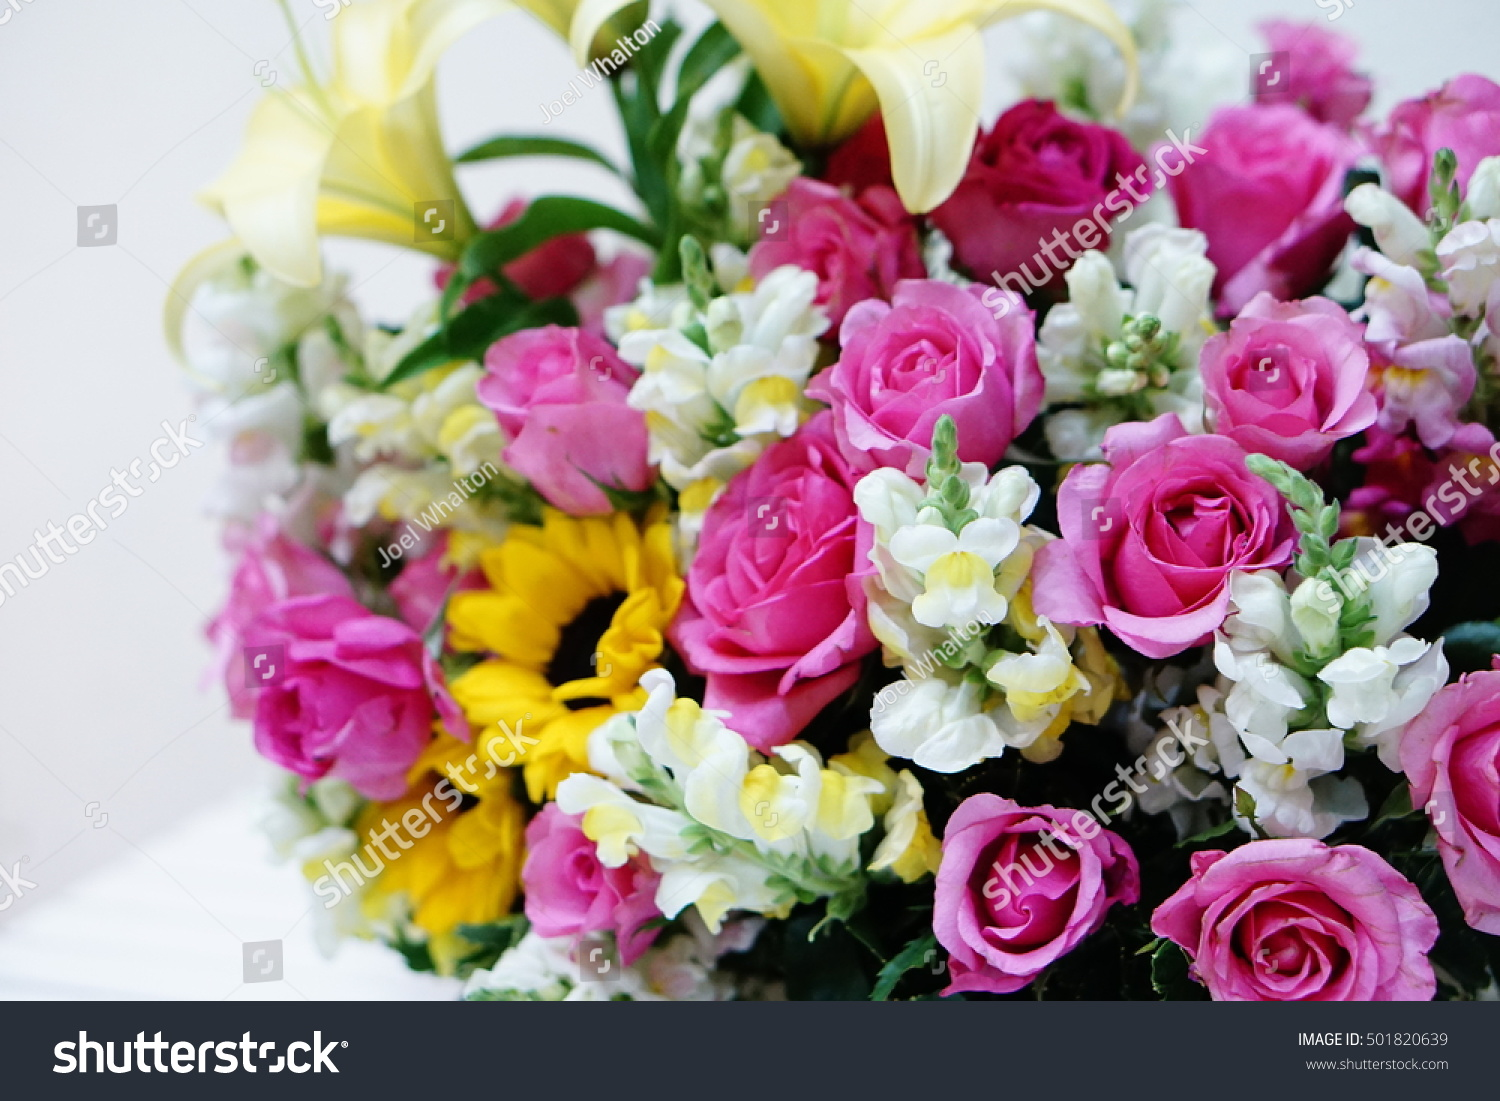 Royalty-free A bunch of flowers (pink roses,… #501820639 Stock Photo ...